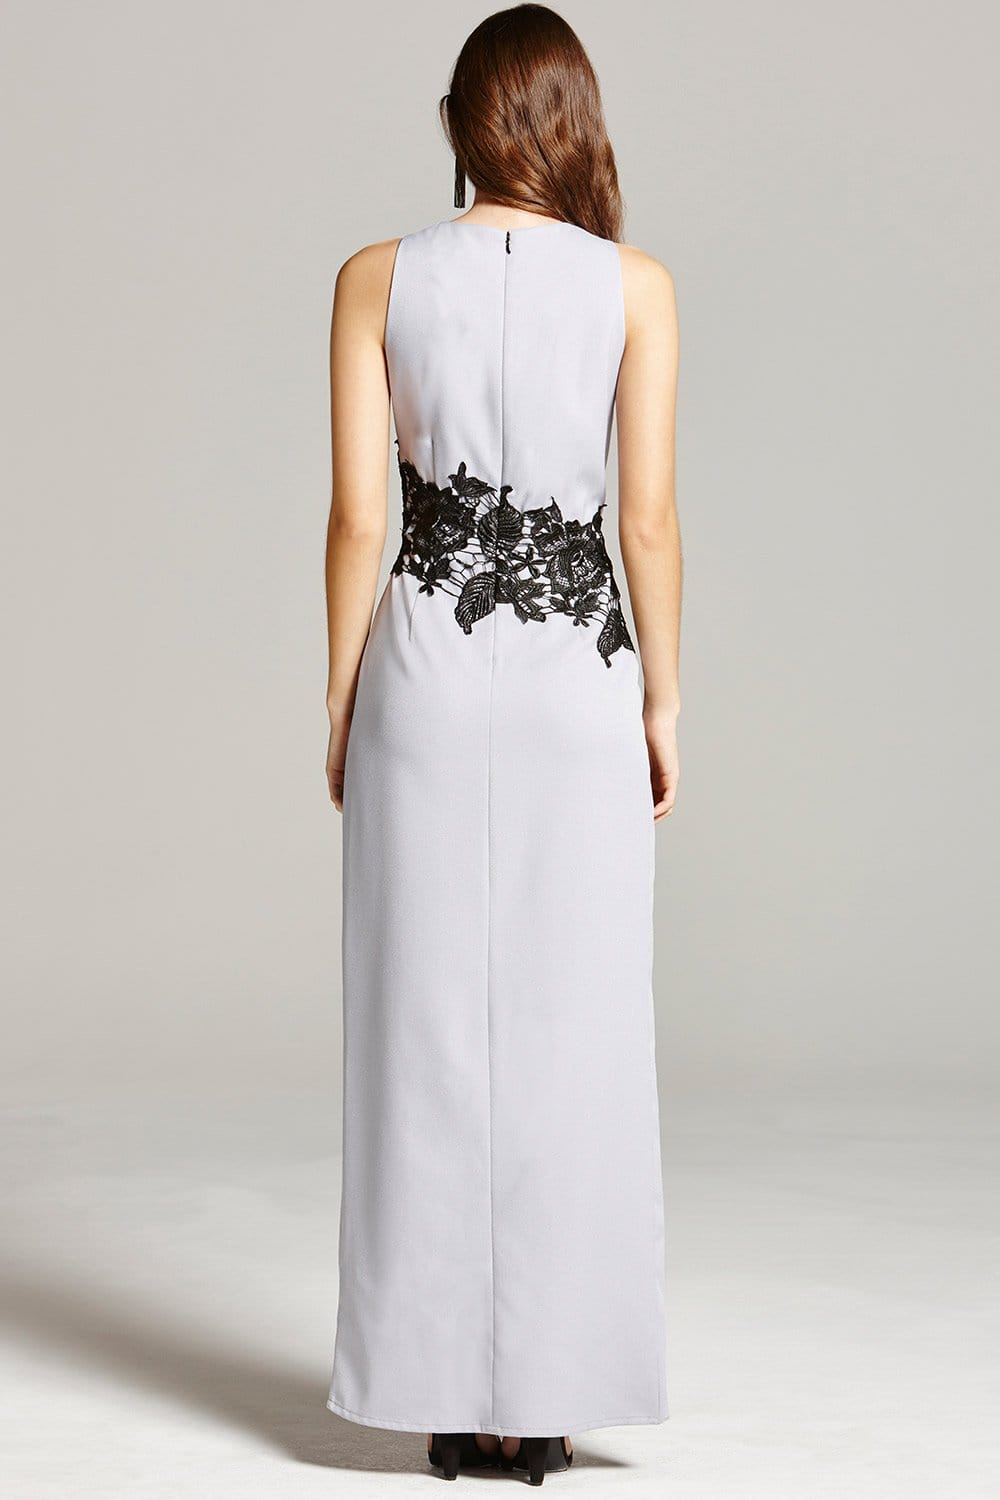 Grey And Black Lace Overlay Maxi Dress From Little